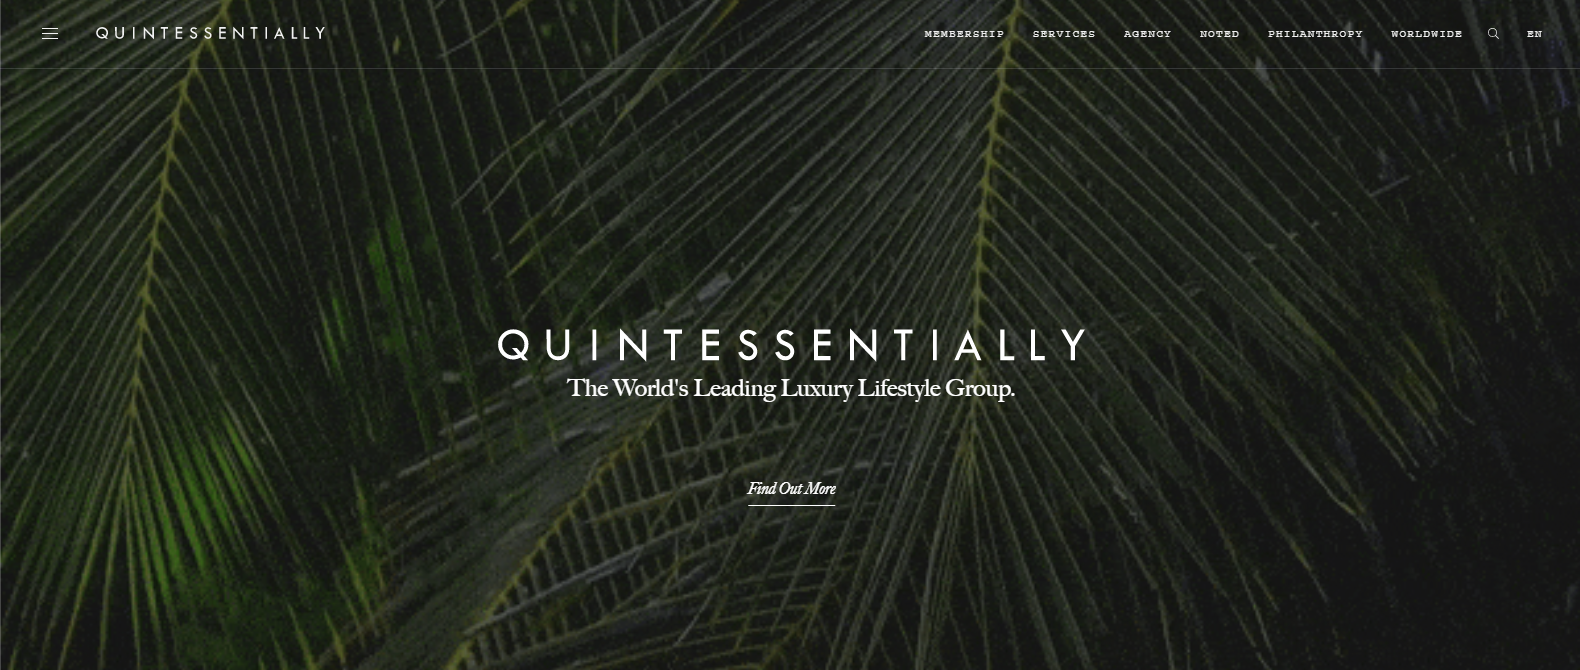 Quintessentially is concierge company